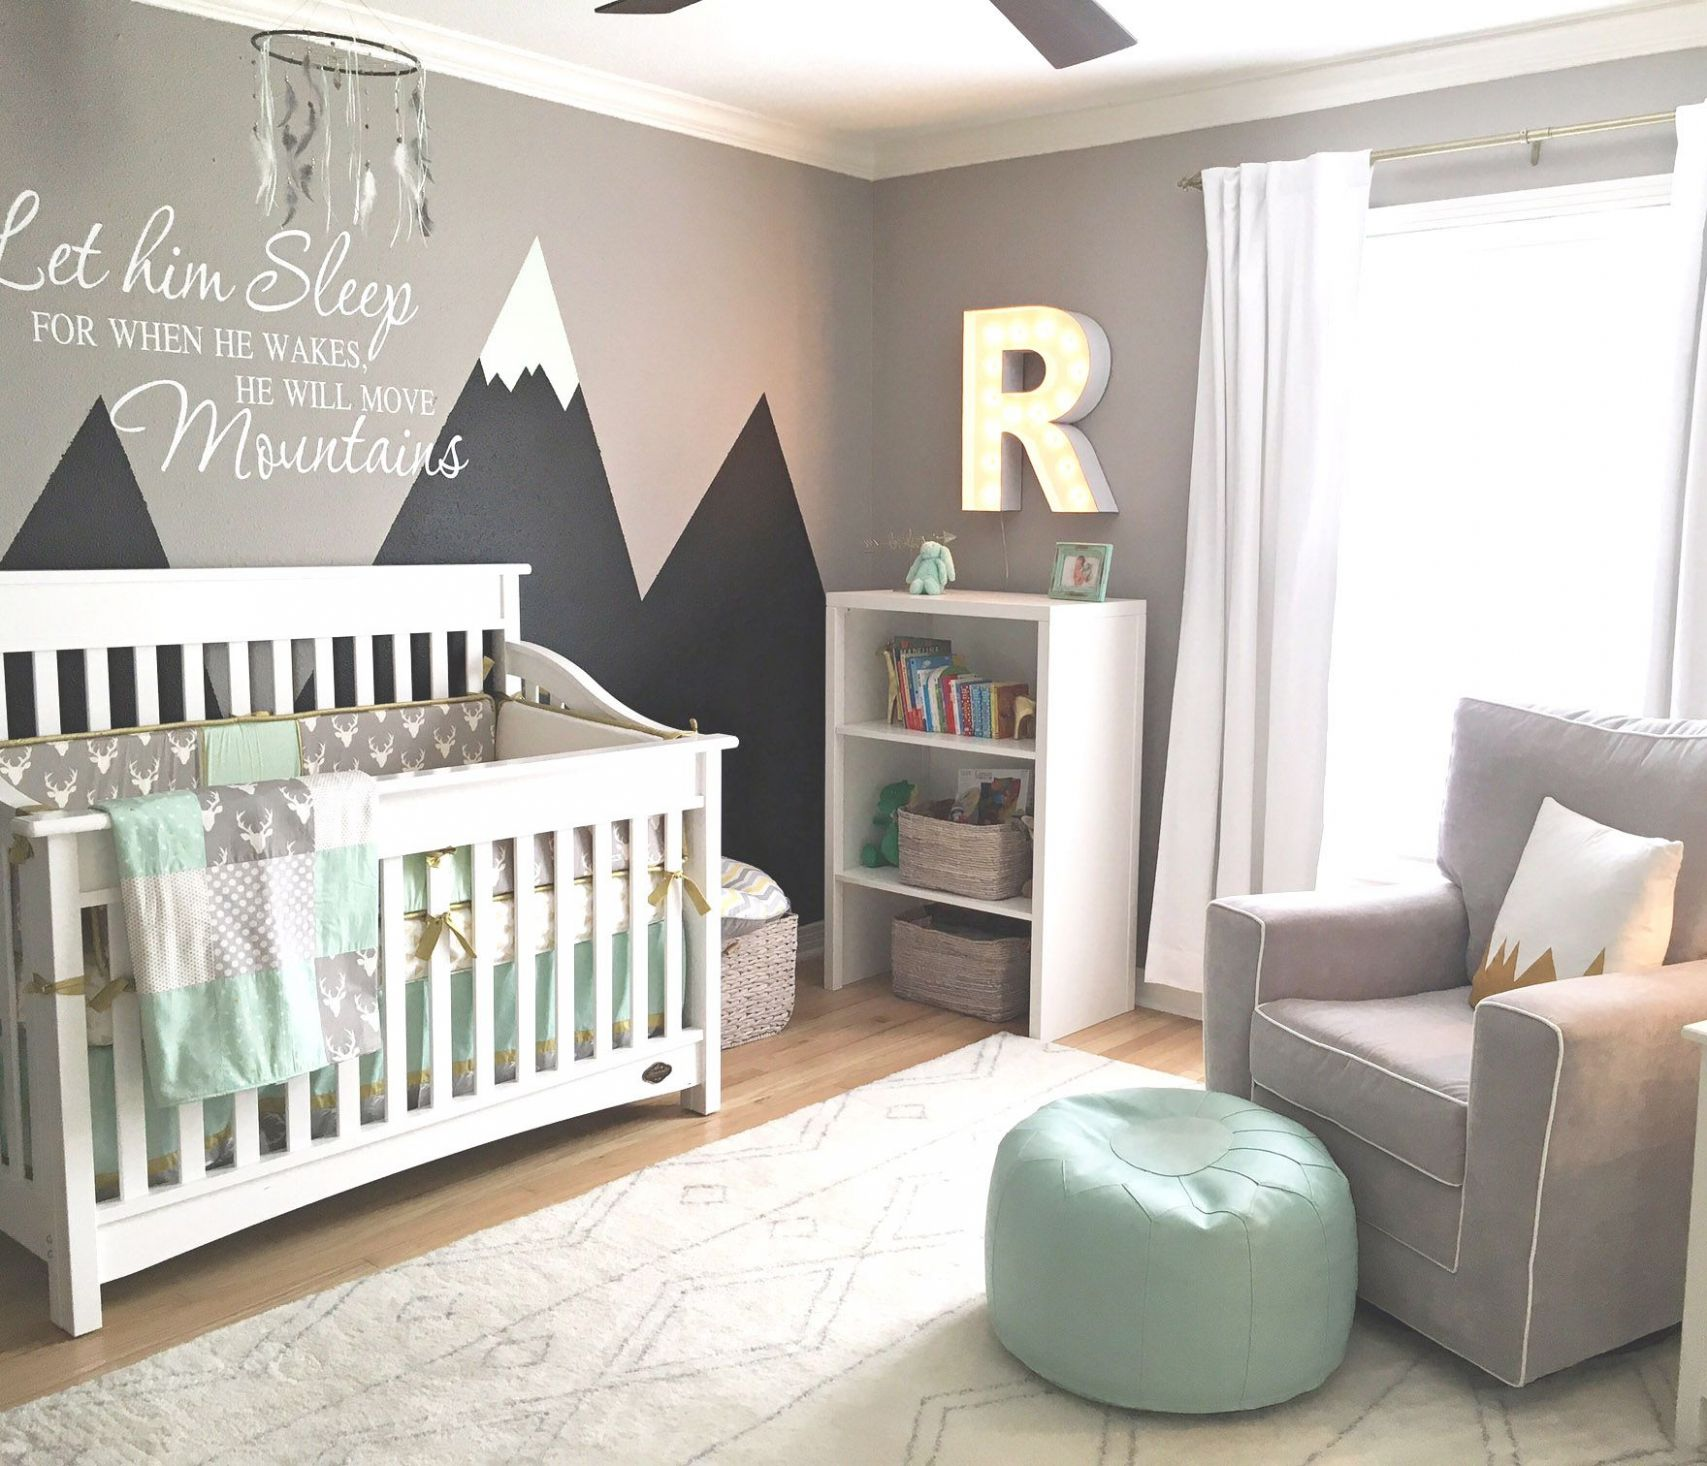 Design Reveal: Mountain-Inspired Nursery | Baby room themes, Boy ...